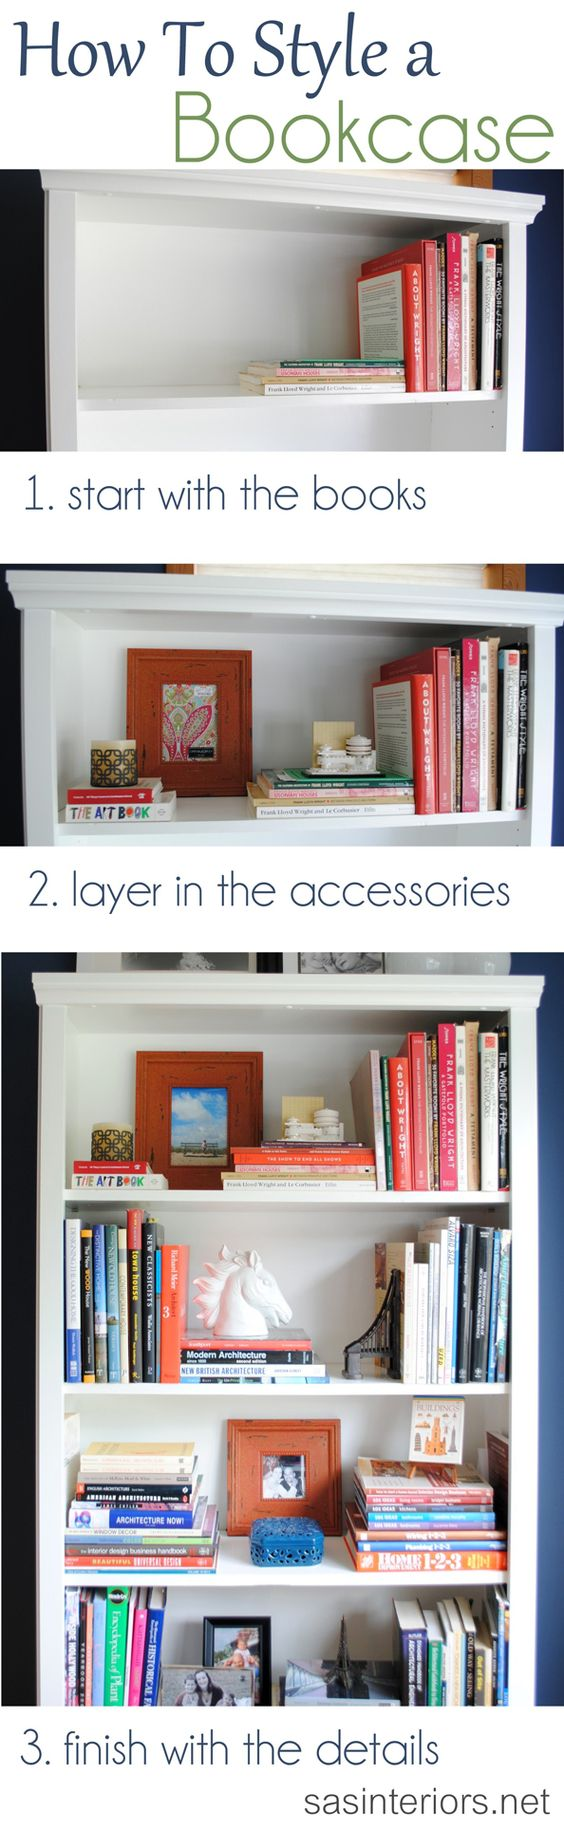 Obviously not for the often read books (esp those under the accessories) but this adds interest to an otherwise boring looking bookshelf.